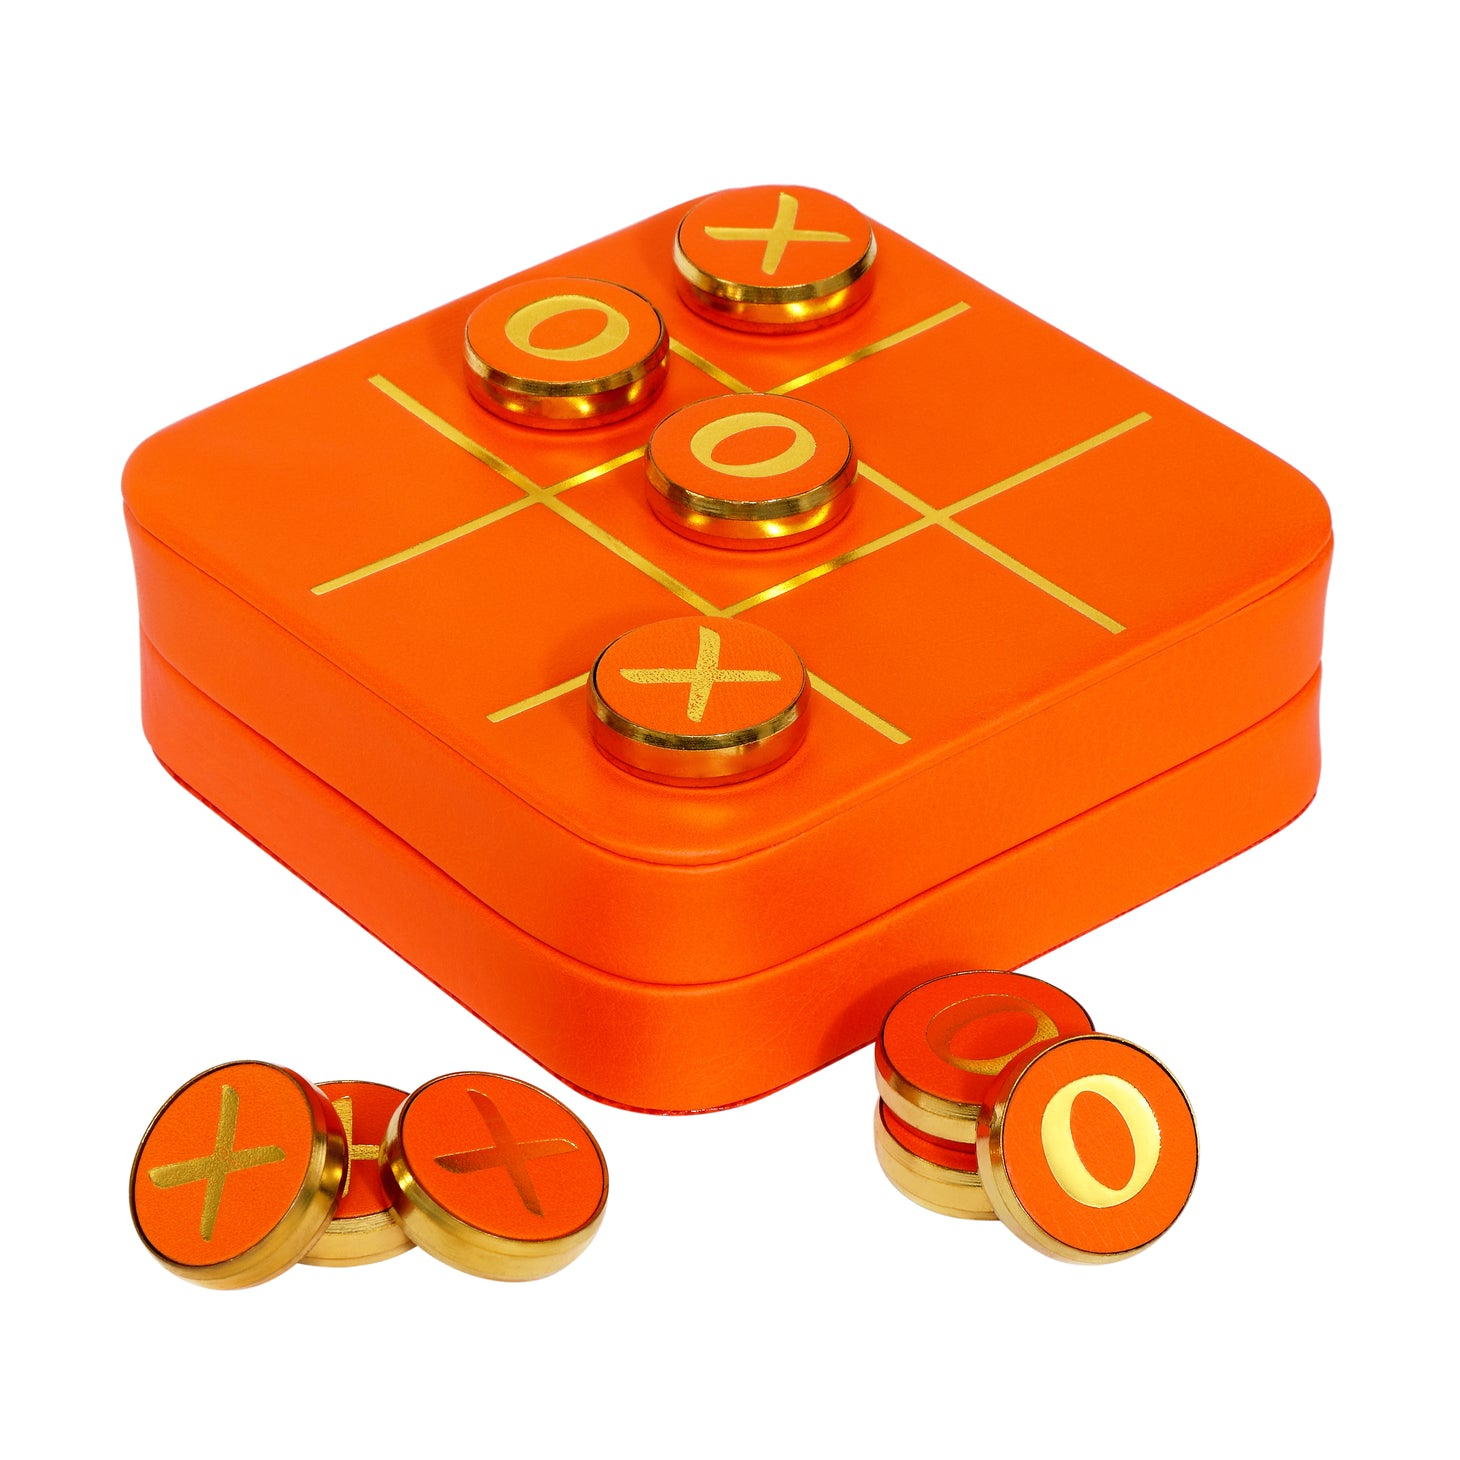 Tangerine Classic Noughts and Crosses